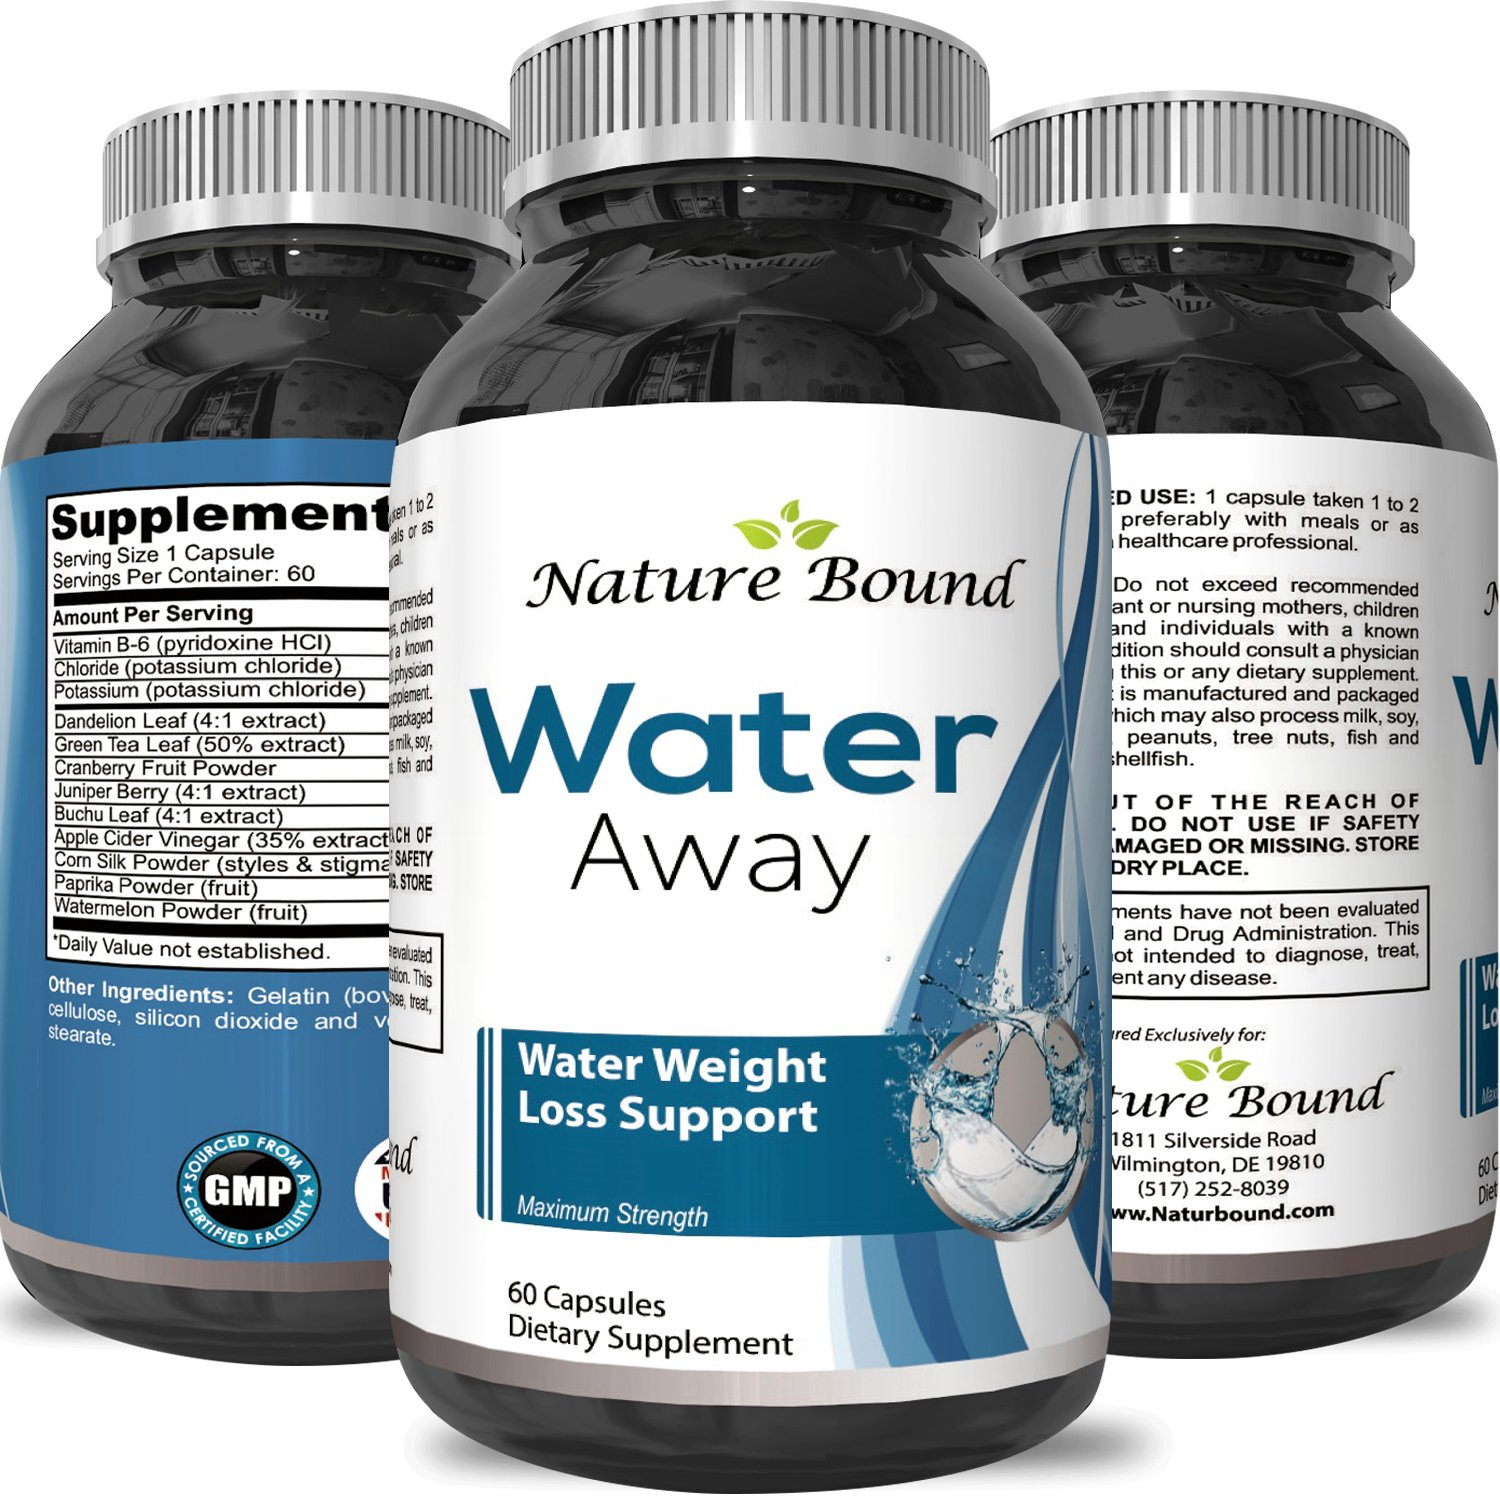 Nature Bound Water Away Pills with Dandelion - Pure Diuretic Supplement for Water Retention Bloating Relief - Best Weight Loss with Green Tea Potassium - Supplement for Men and Women 60 Capsules by Nature Bound